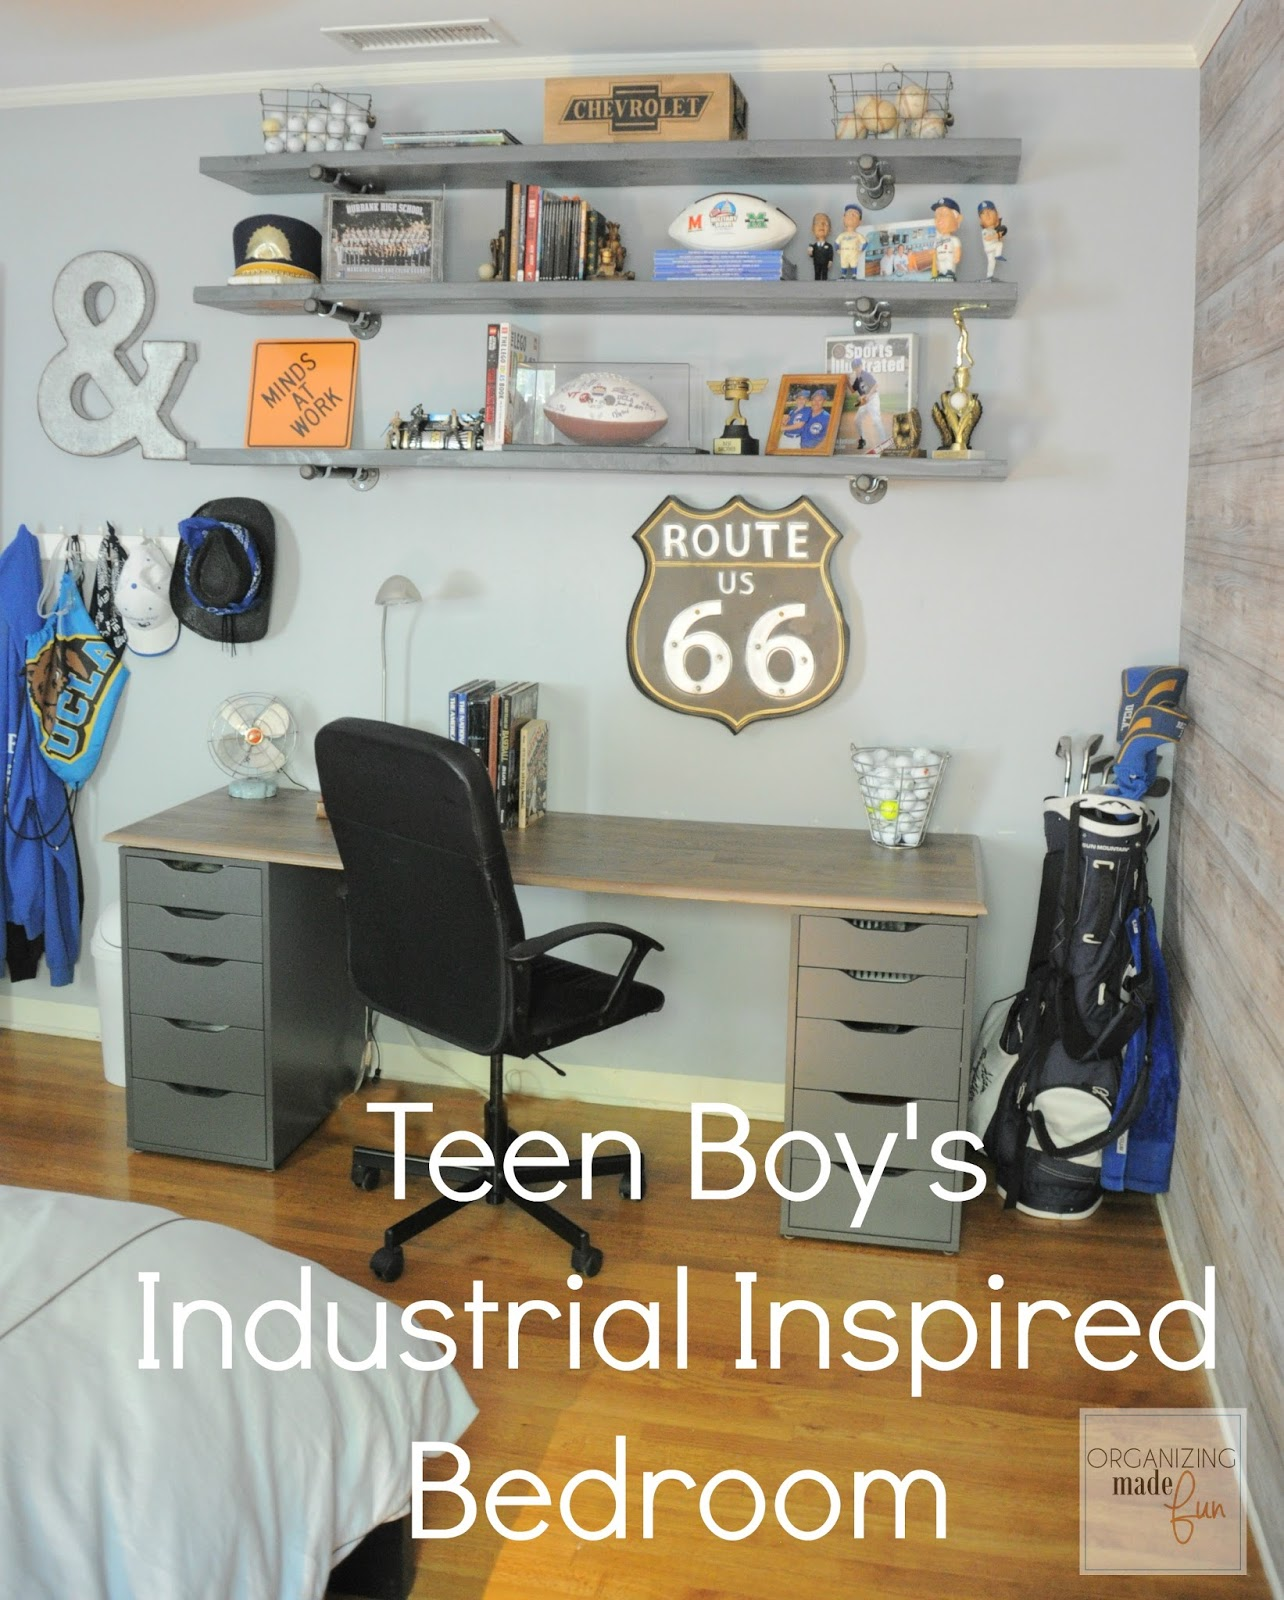 Teen Boy s Room Industrial Shelving    OrganizingMadeFun com. Teen Boys Bedroom Final Reveal   Organizing Made Fun  Teen Boys